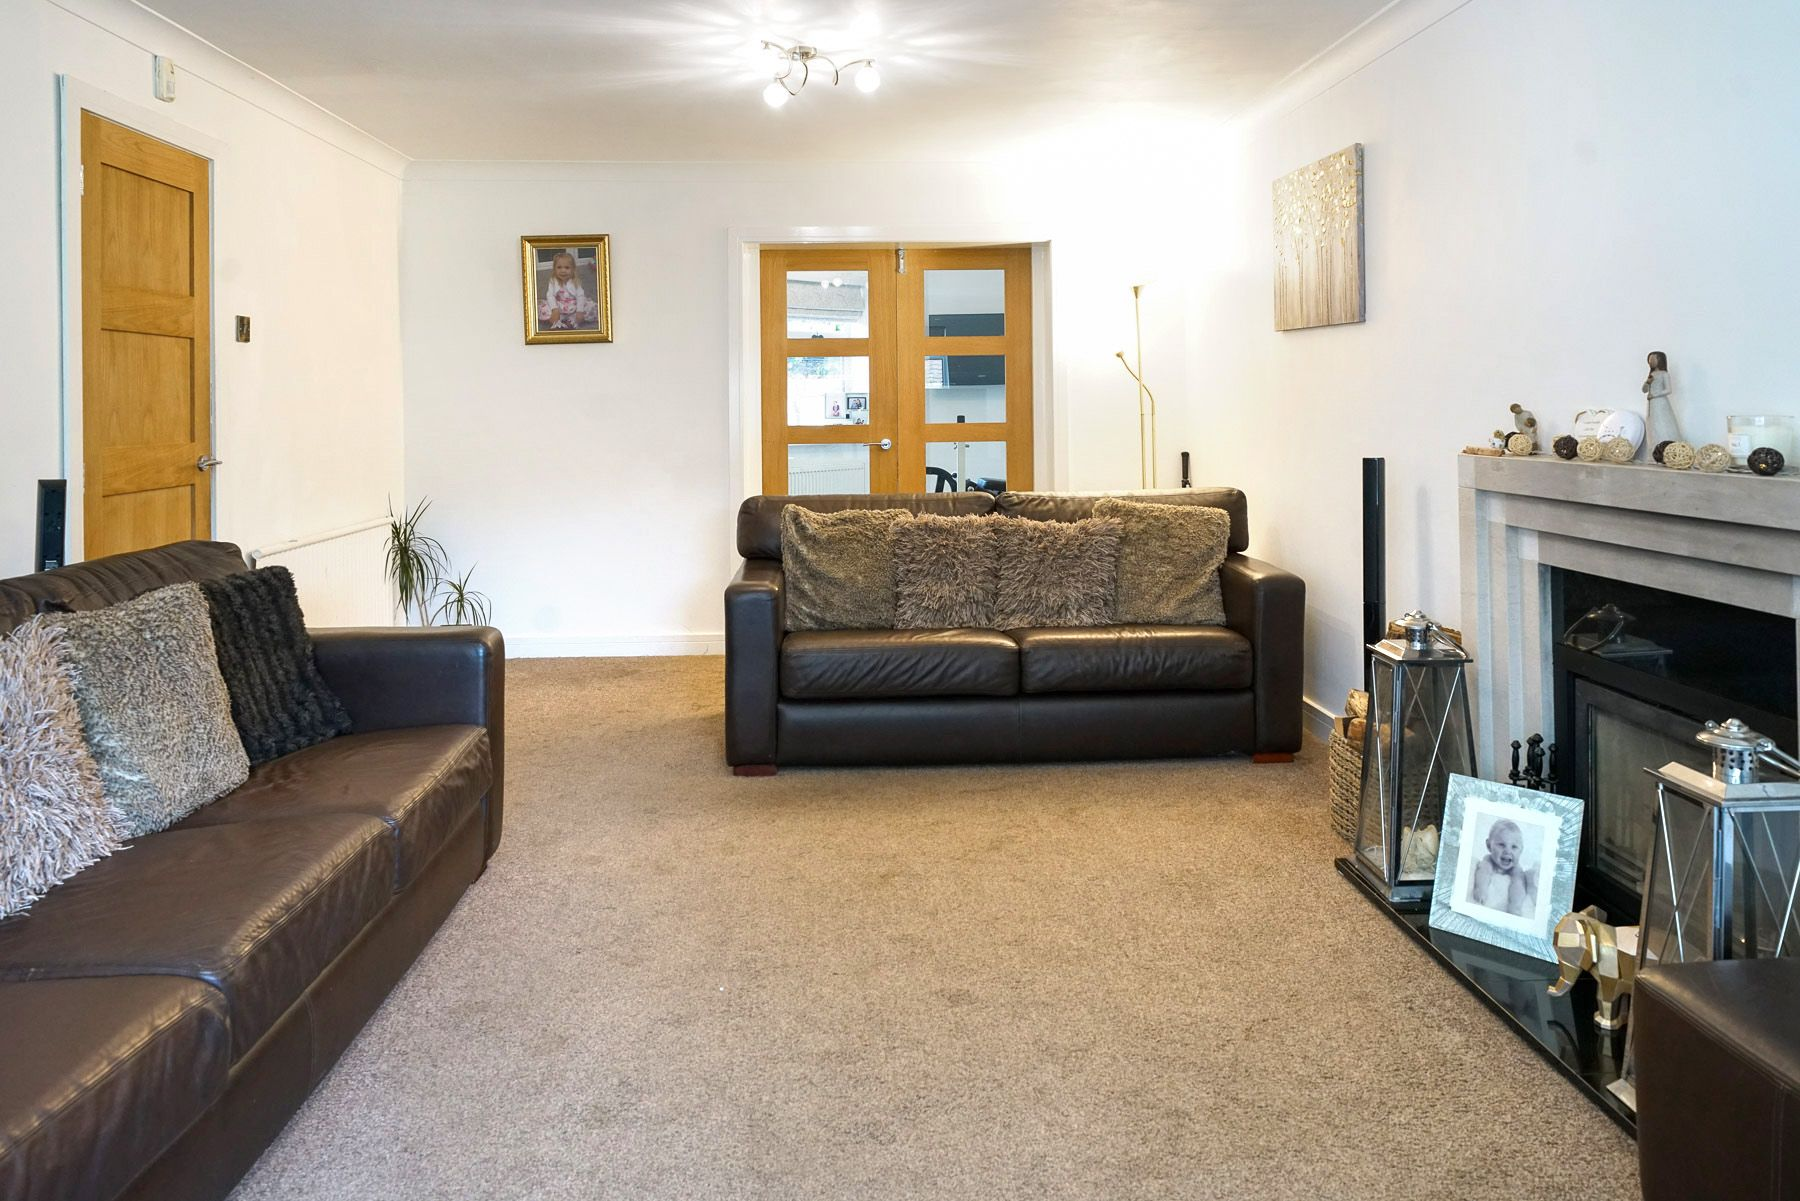 4 bedroom detached house SSTC in Bolton - Photograph 7